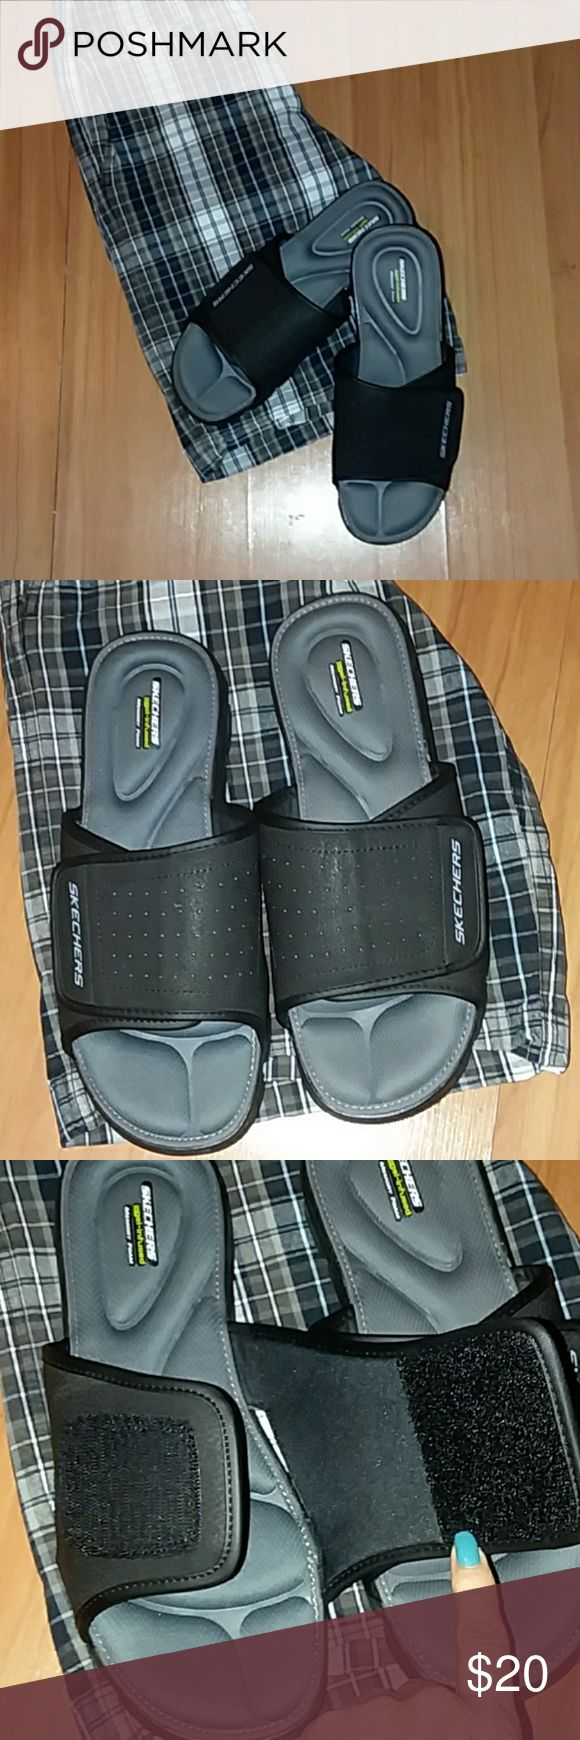 Men's Skechers Sandals Black on gray mens Windswell Skechers sandals. These are in like new condition! Worn only for a few hours! Too wide for my bf's narrow feet. Velcro closure and gel infused memory foam sole. I put my foot in them and they are sooo comfortable! Fit true to size. Skechers Shoes Sandals & Flip-Flops